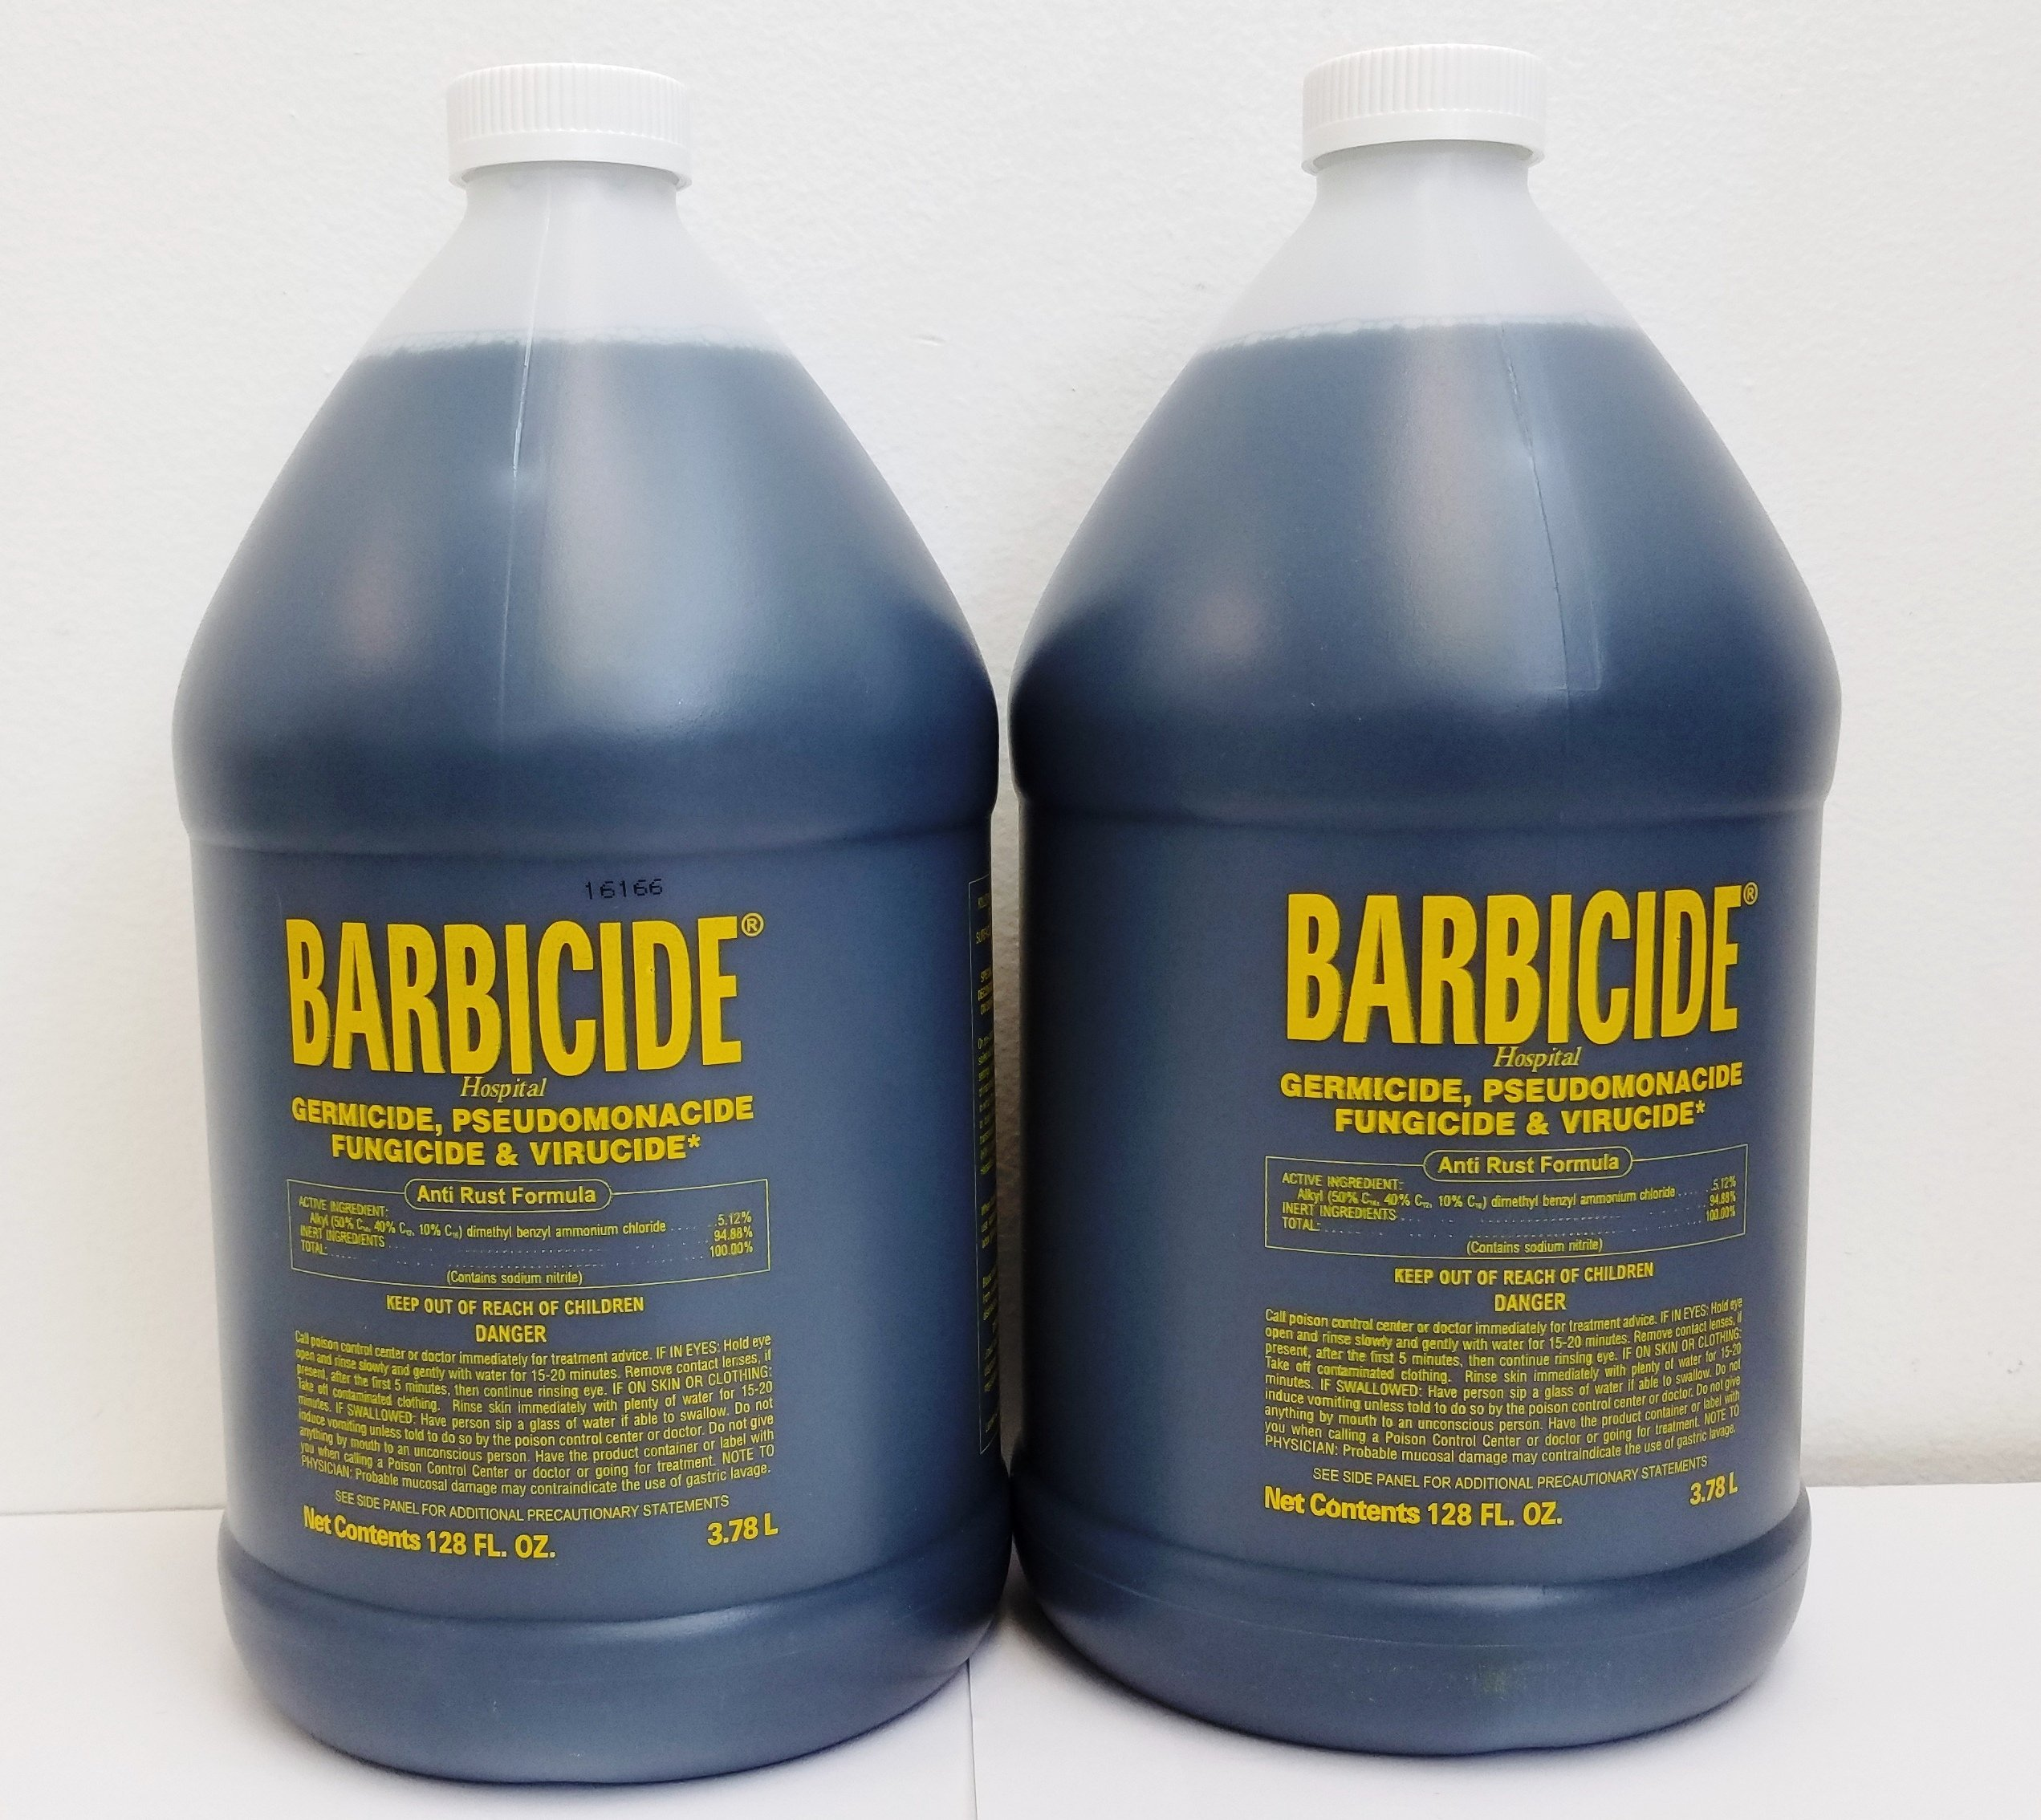 Barbicide Disinfectant Liquid Gallon 128oz (2) by Barbicide (Image #1)